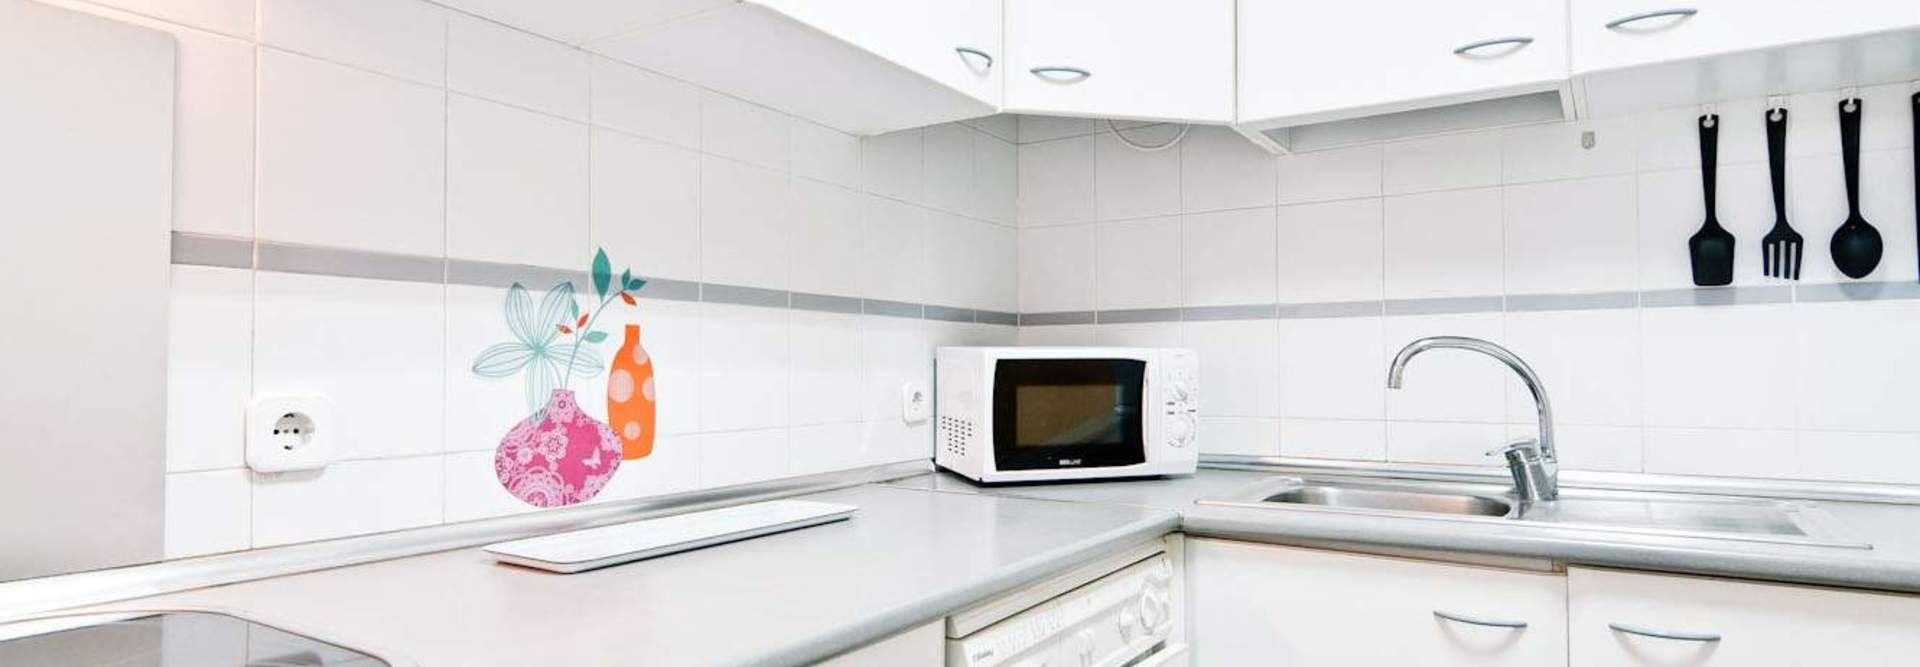 Home alquiler apartamento madrid centro mad4rent  3